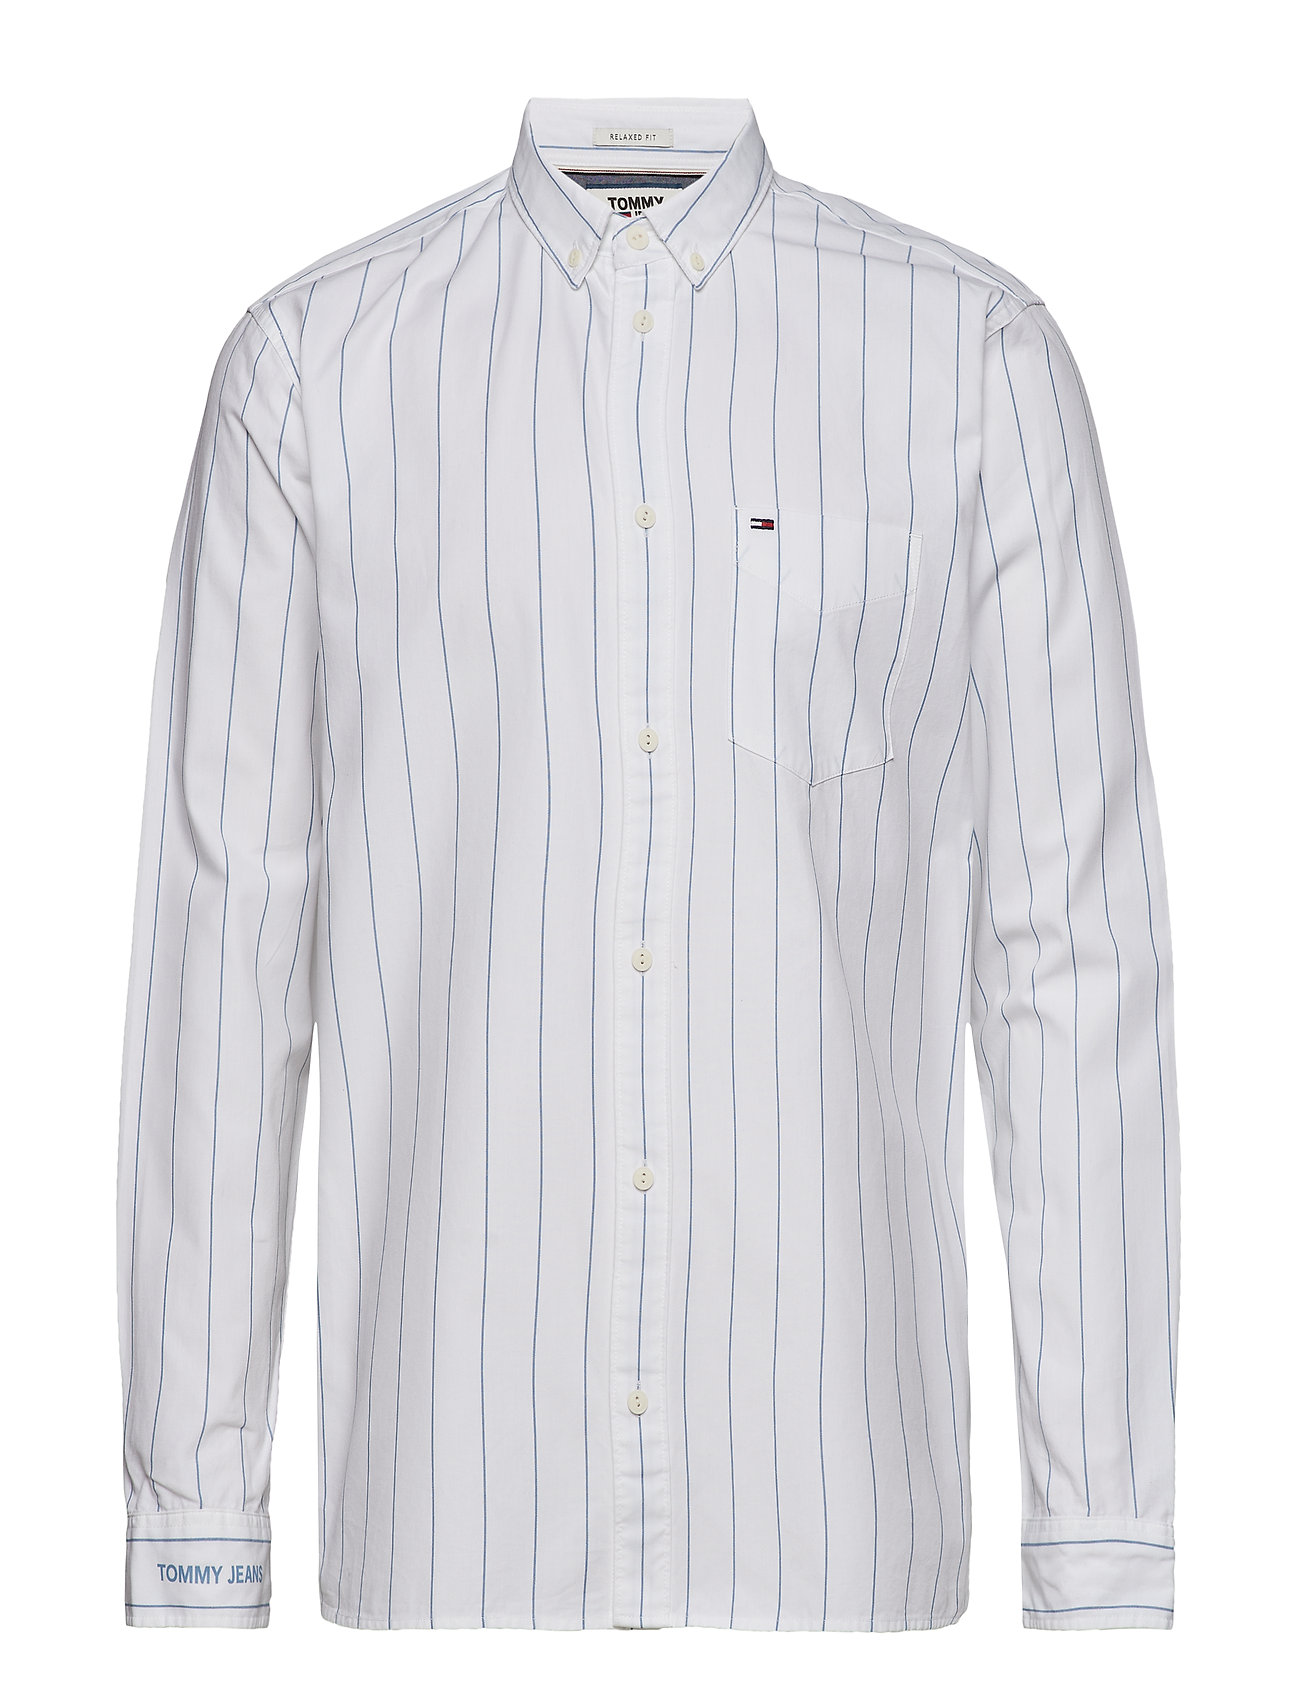 Tommy Jeans TJM PINSTRIPE SHIRT, - CLASSIC WHITE